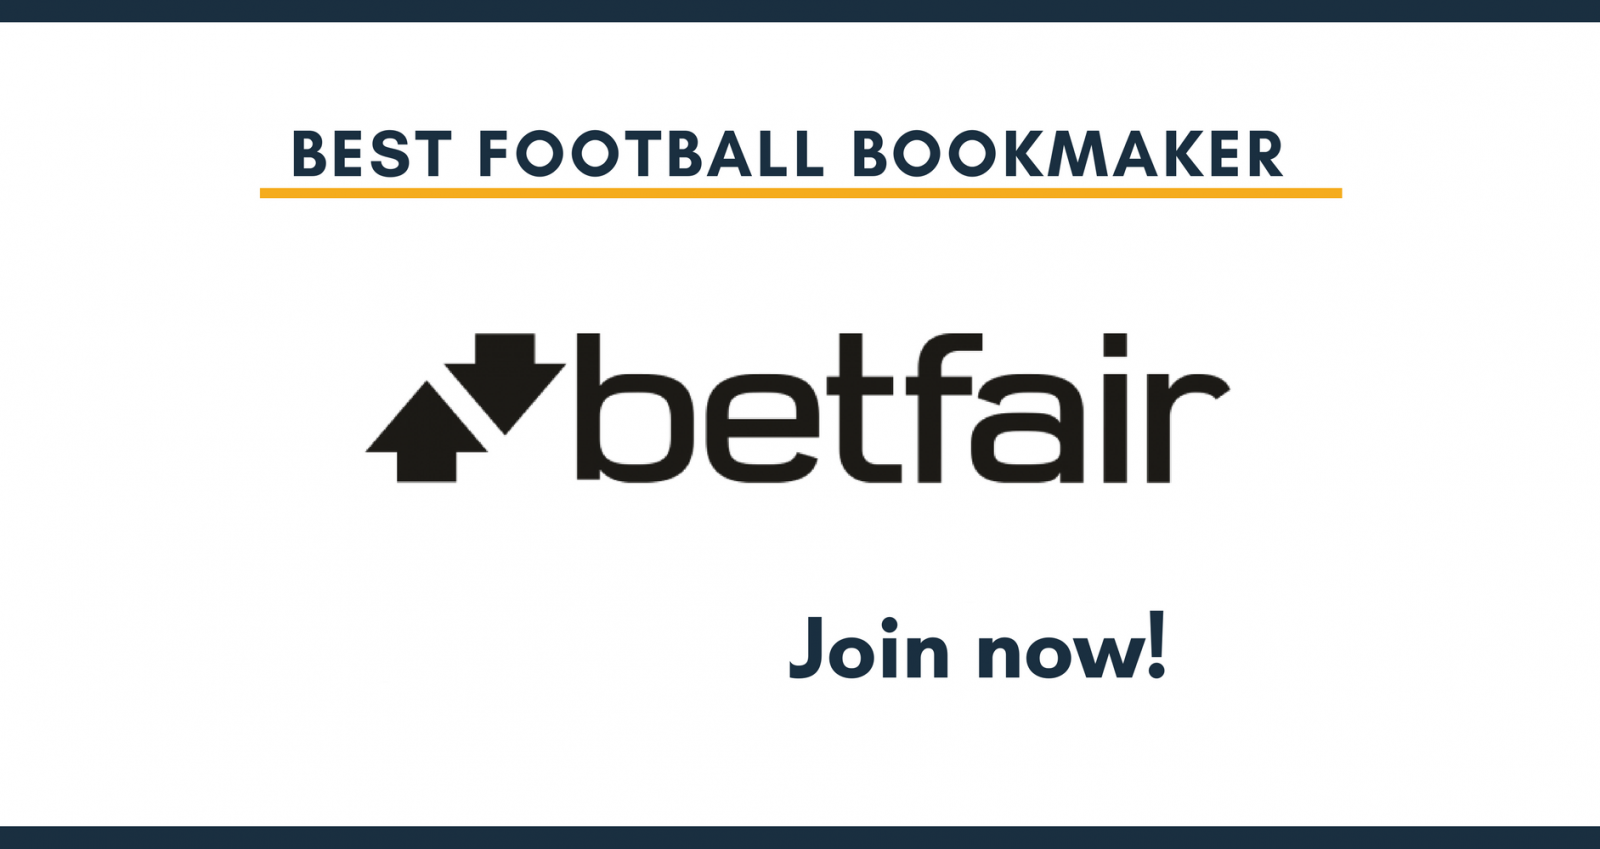 Best footbal bookmaker BETFAIR